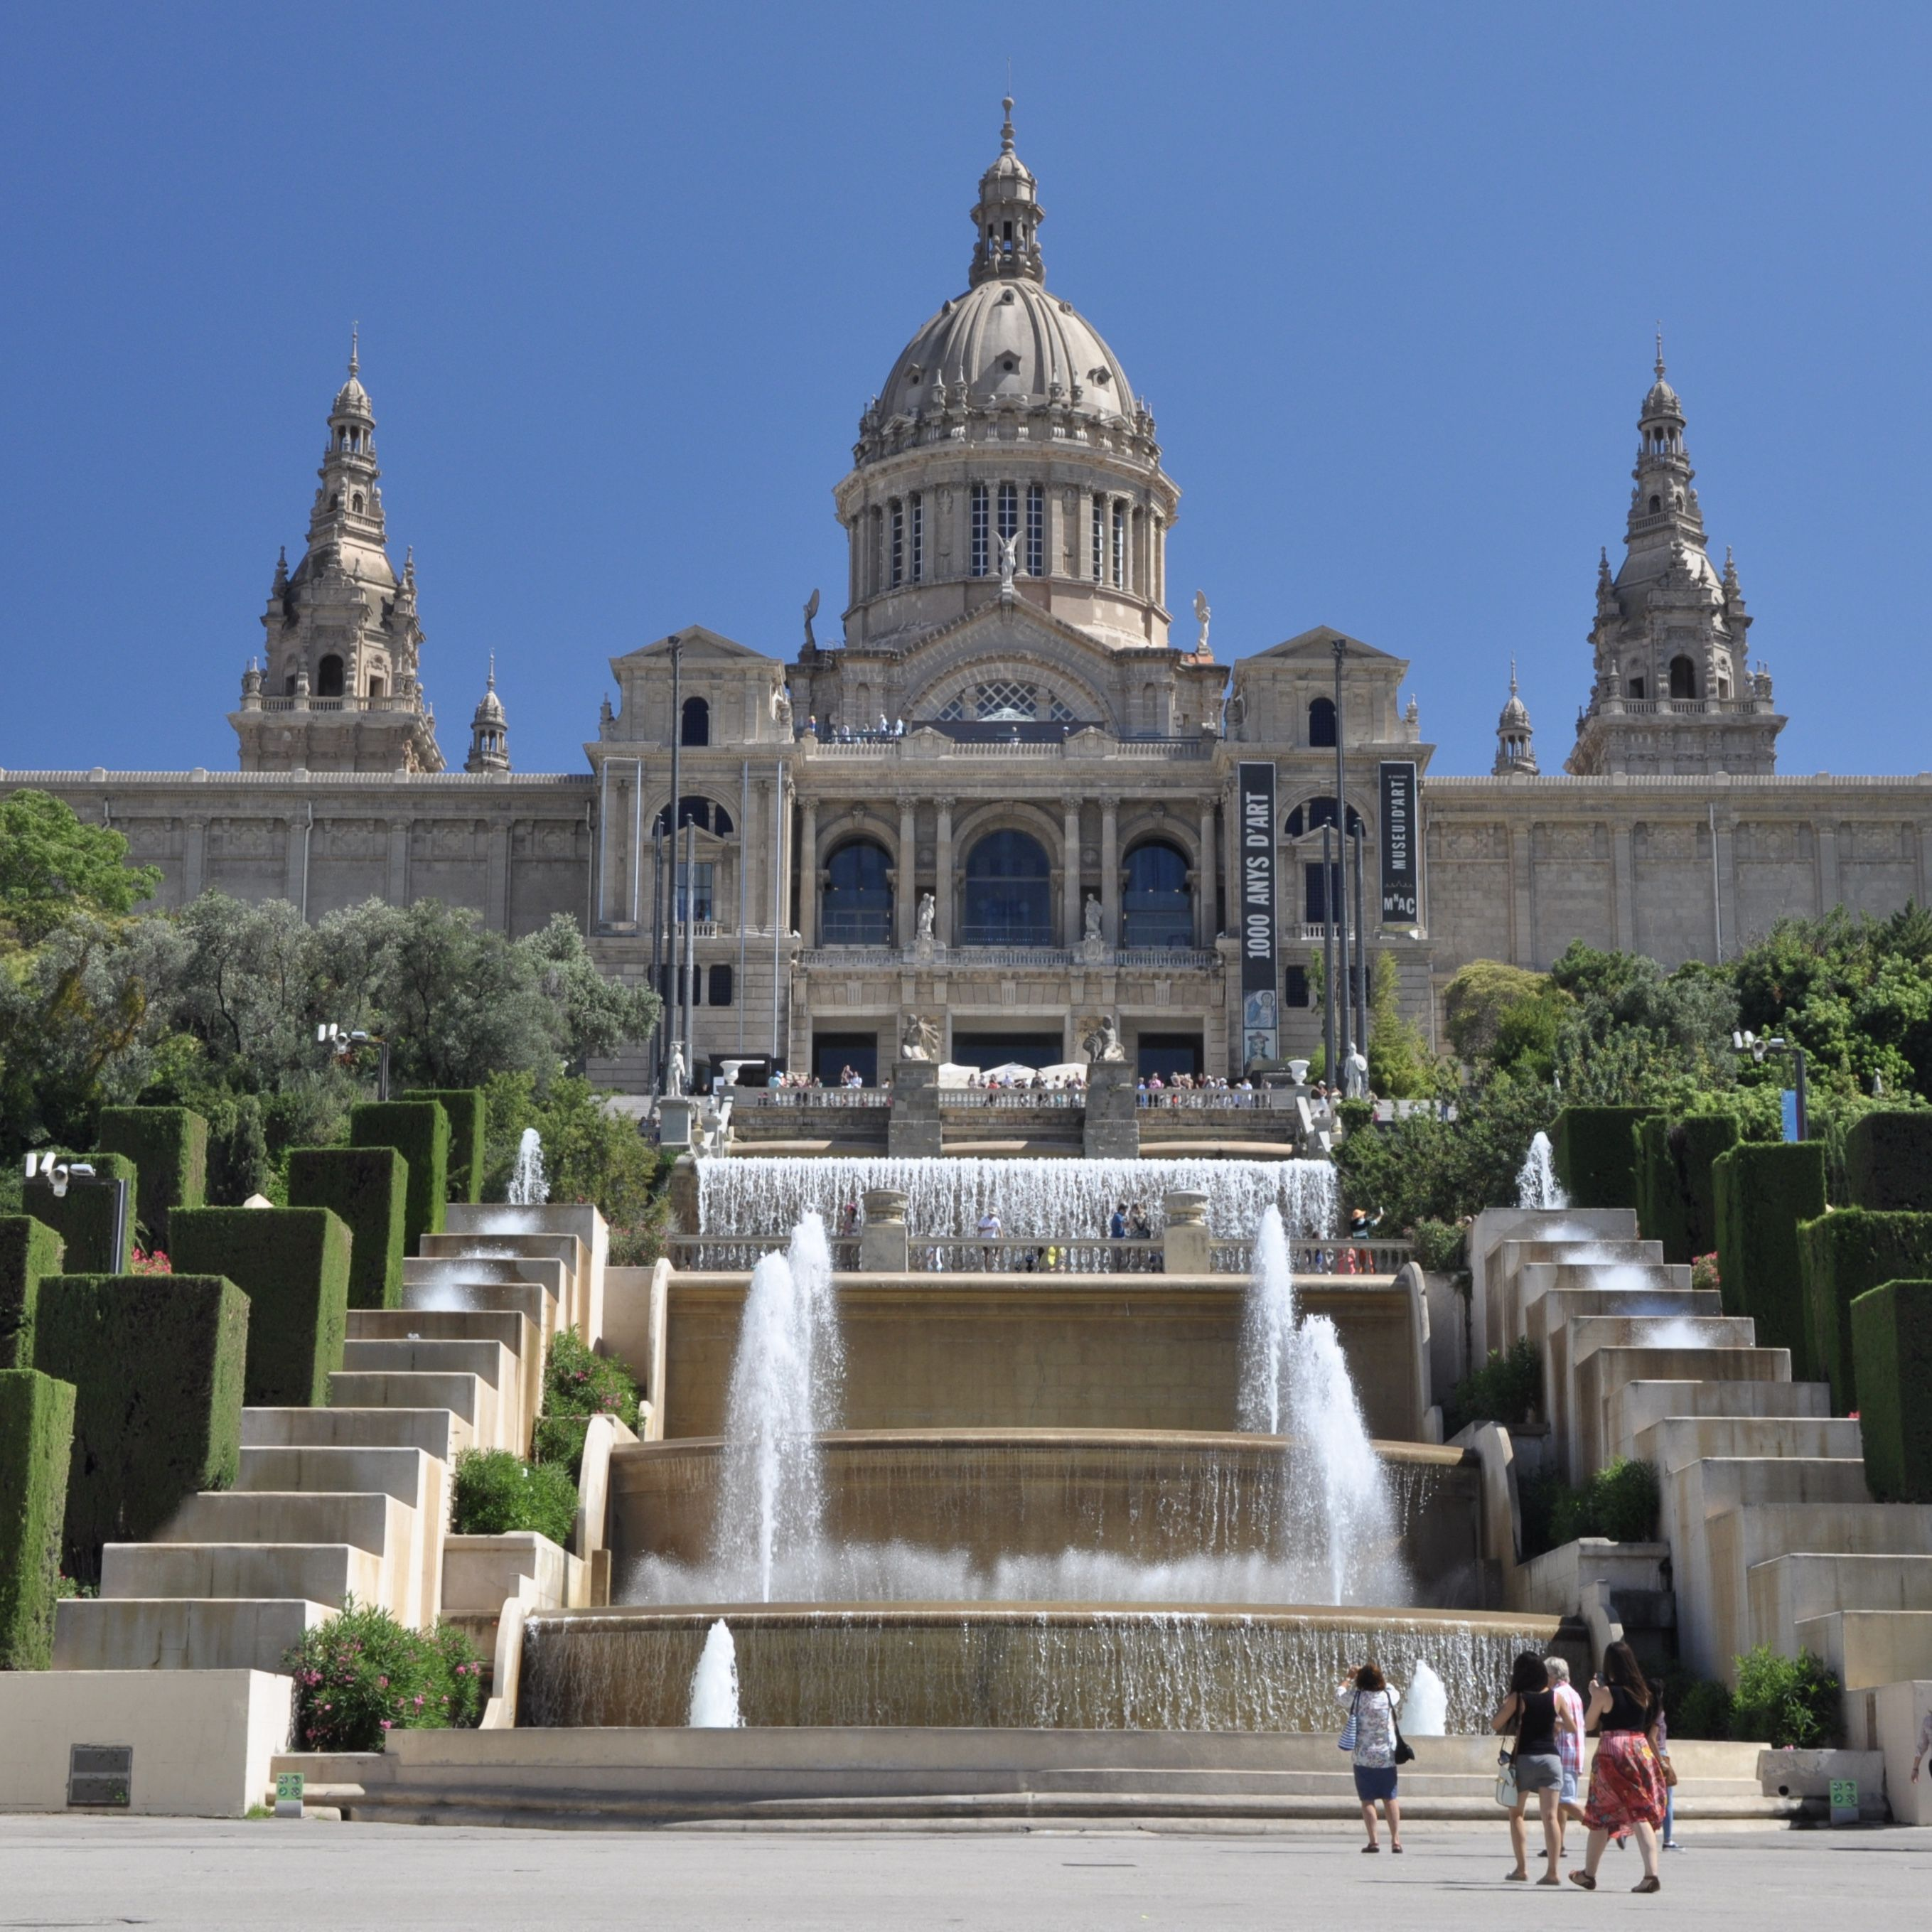 Check my 5-day itinerary for inspiration on things to do in Barcelona, Spain. Museum of Catalan Art in Barcelona.